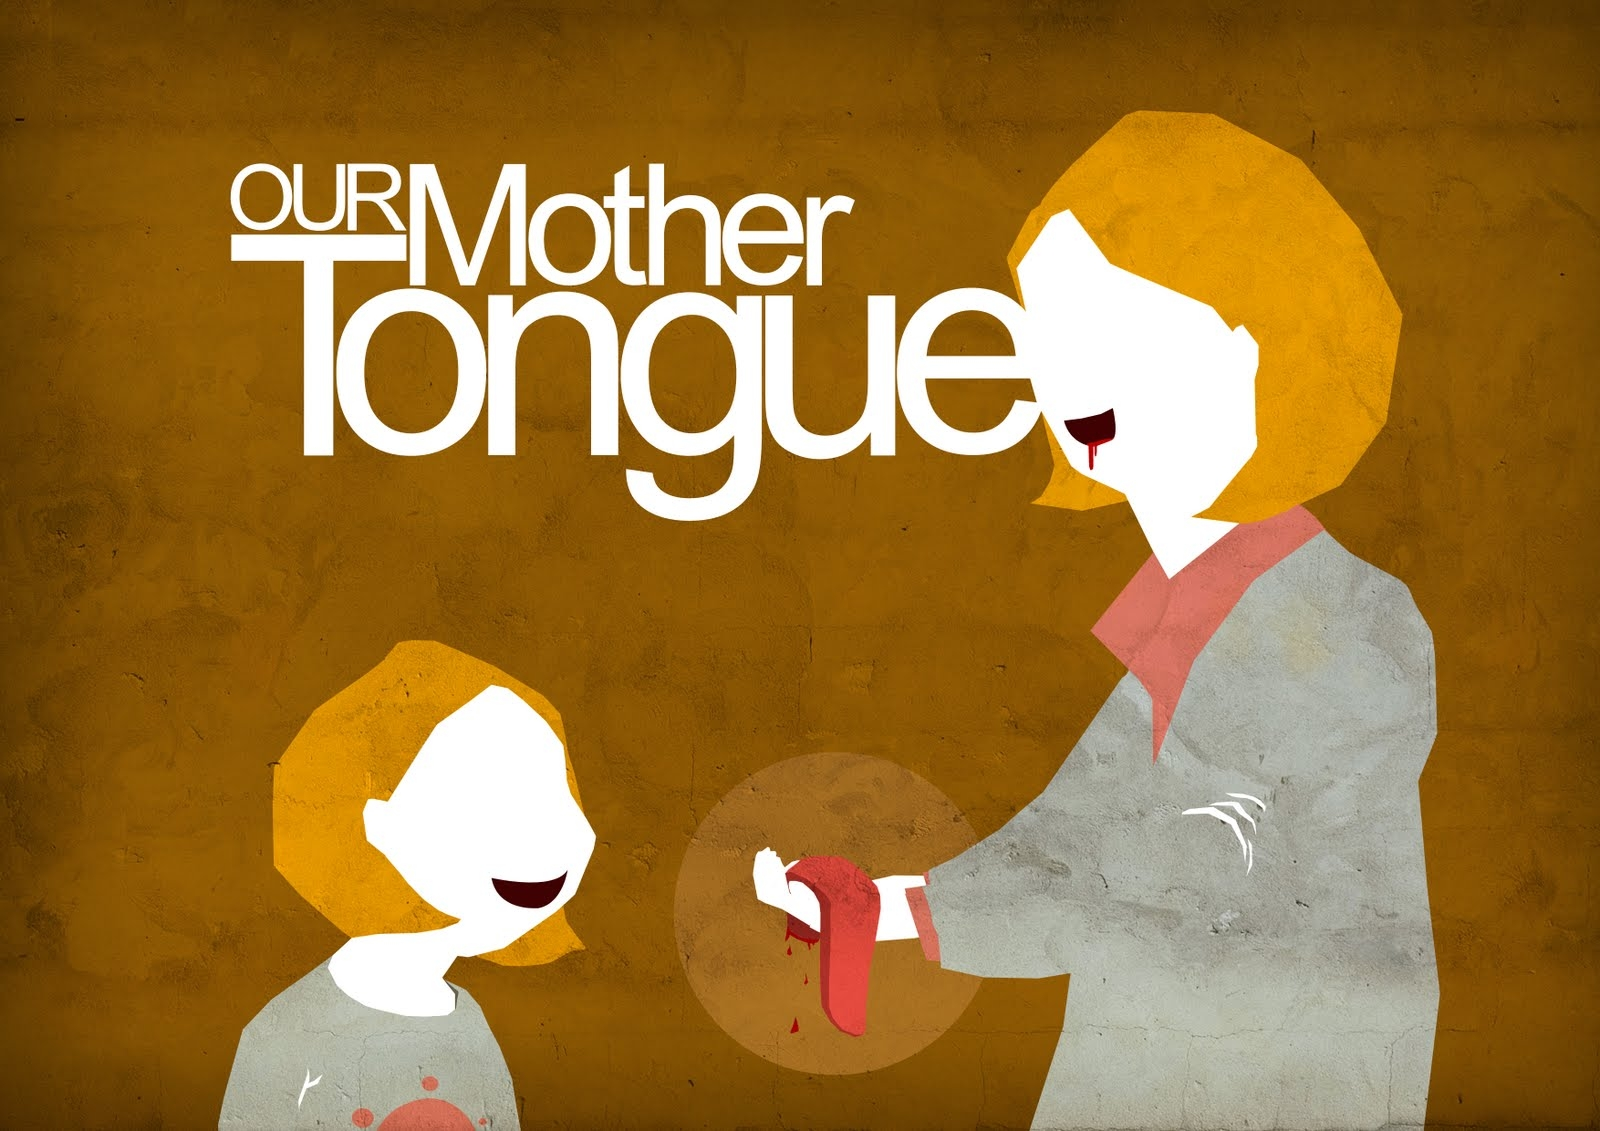 mother tongue interlanguage essay The focus of this konglish page is to educate about konglish interlanguage and hopefully help (mother tongue) if you recall from the previous essay.